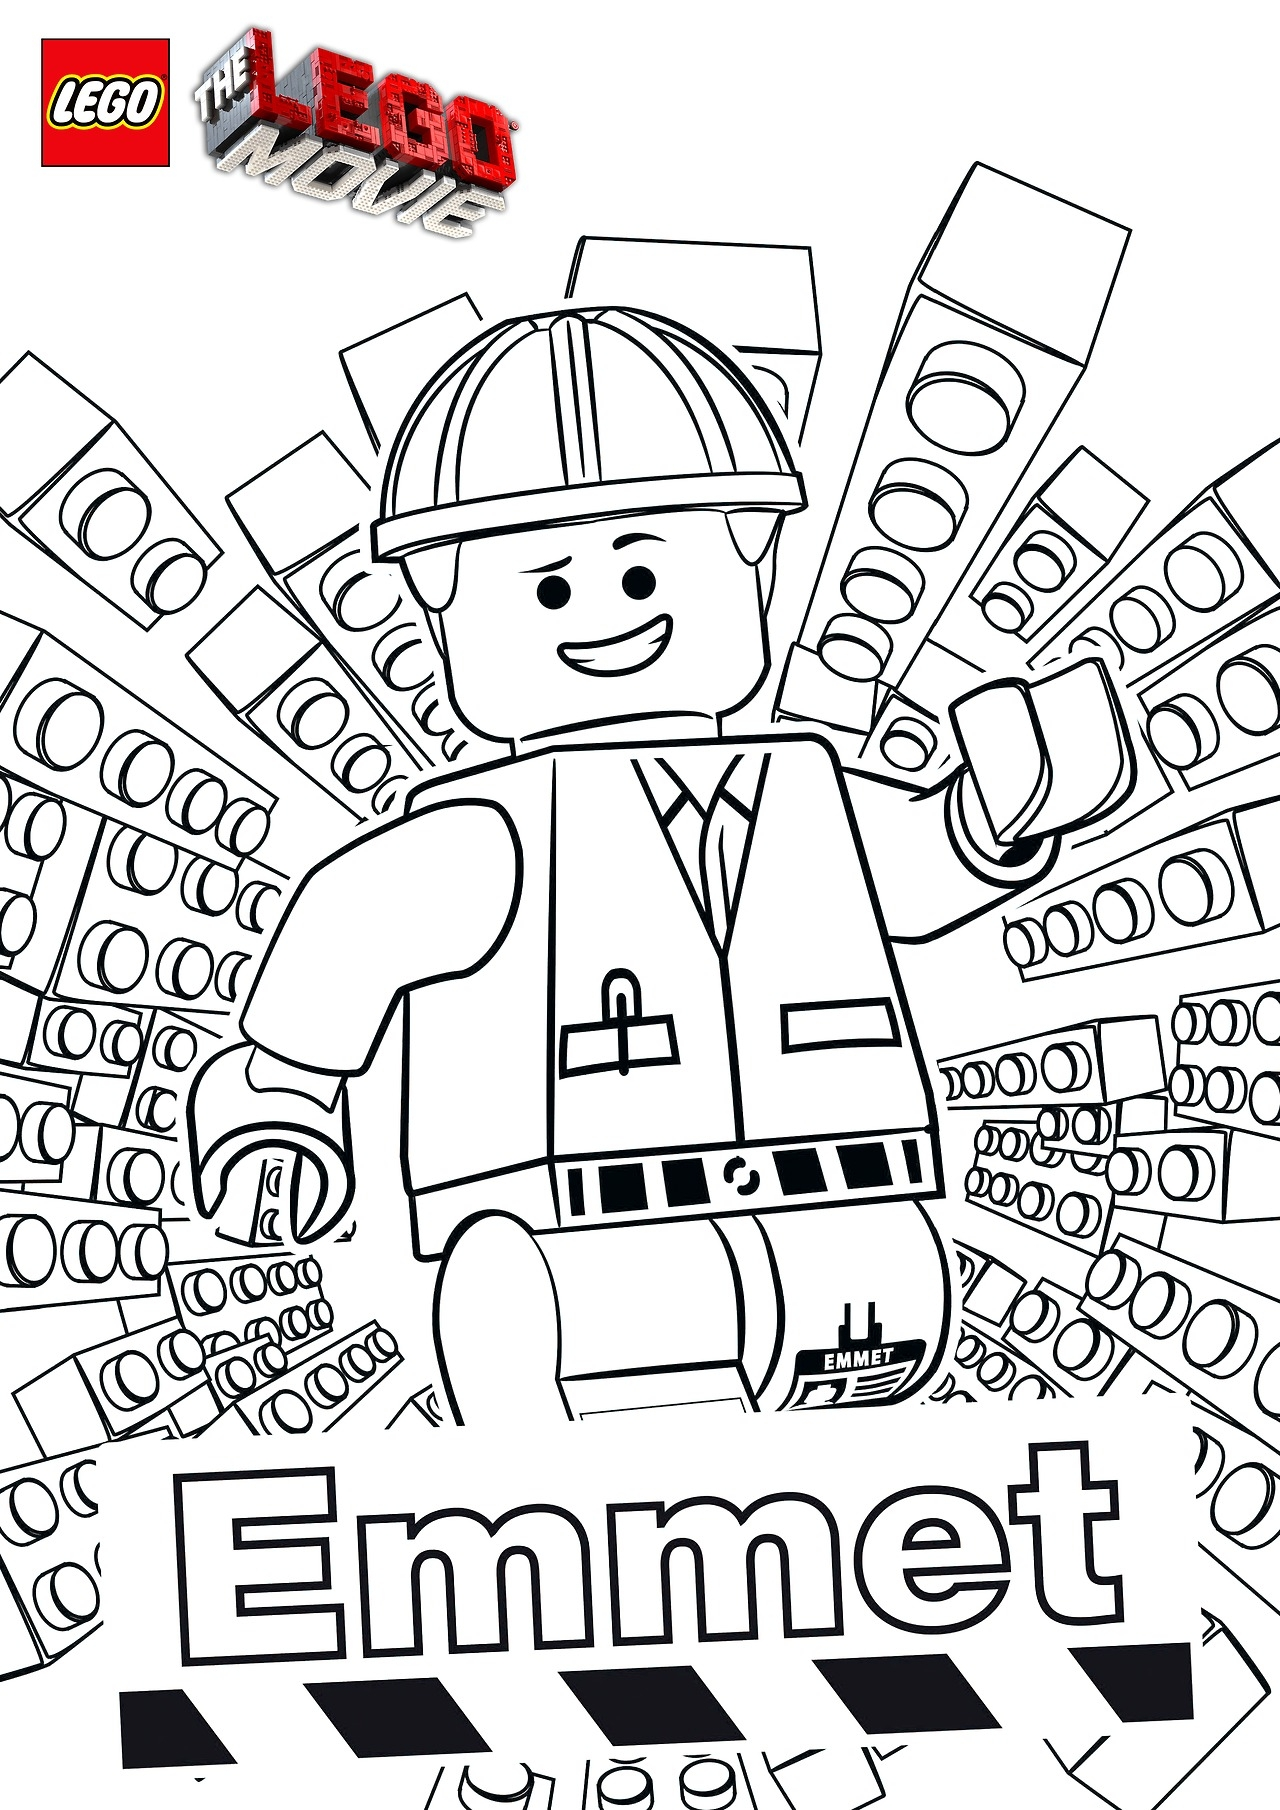 1280x1810 Lego Hobbit Coloring Pages Hobbit Coloring Pages Printable